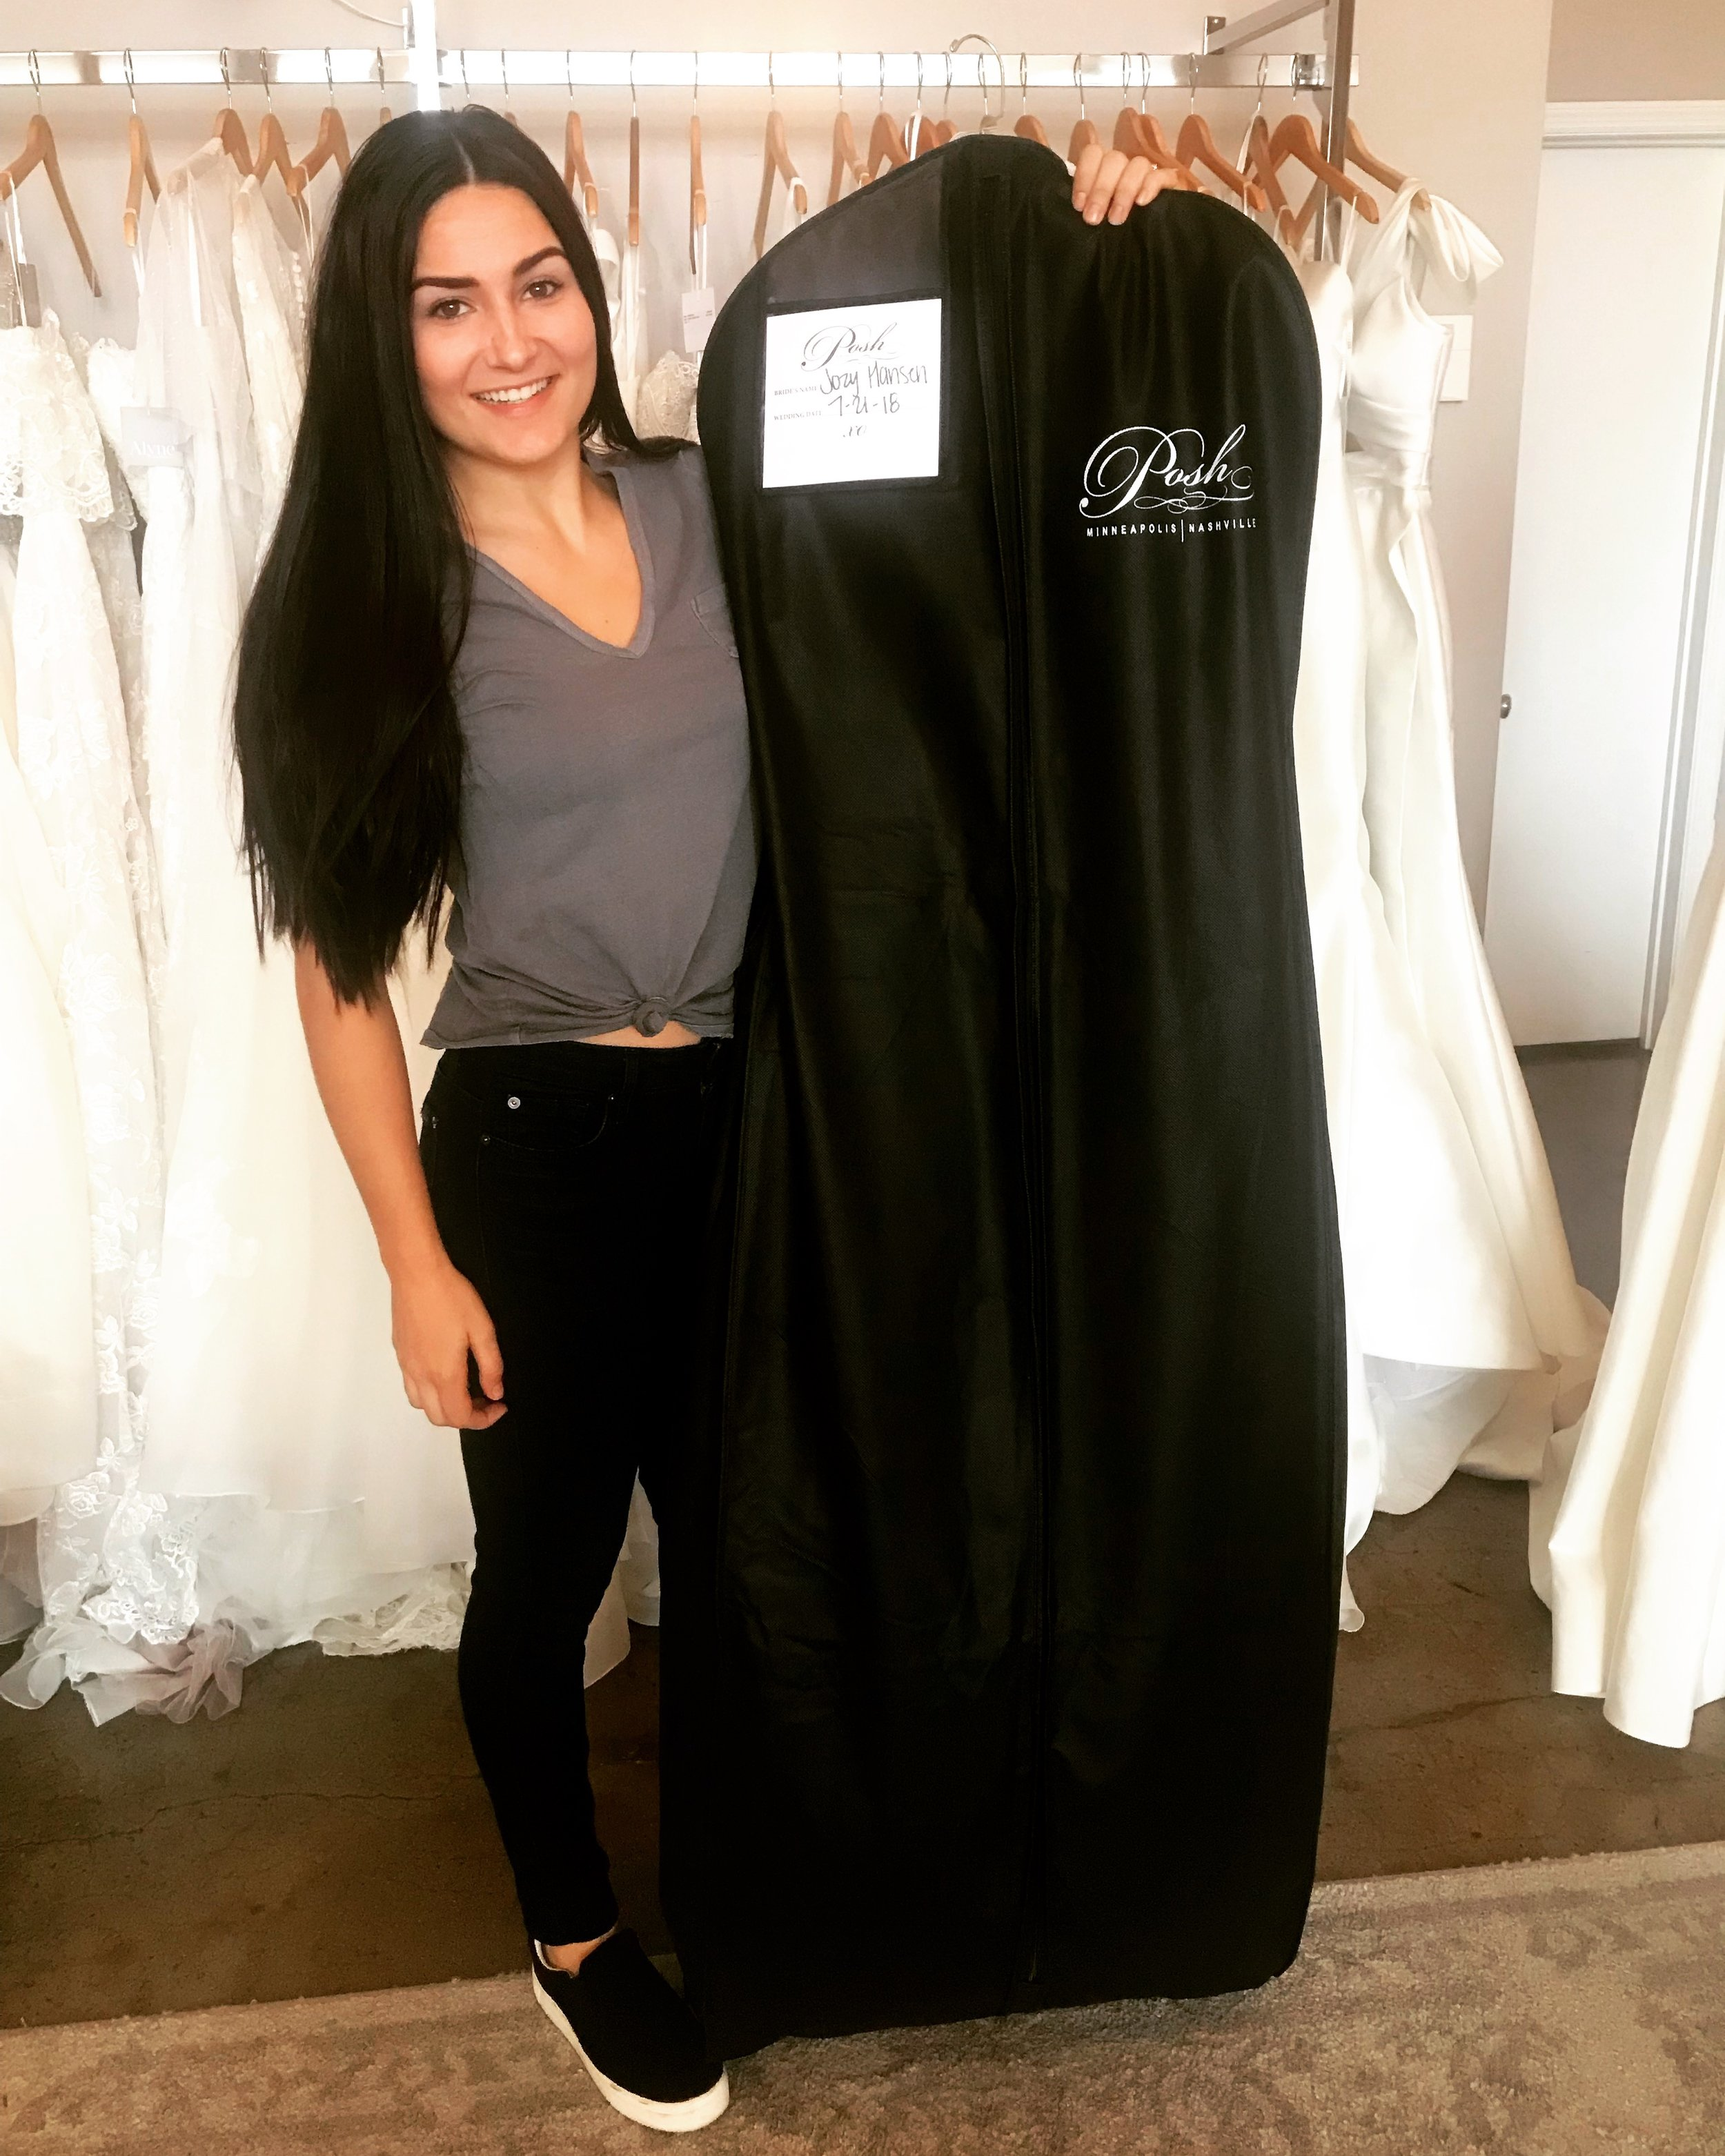 My dress has arrived! I get to take her home!!